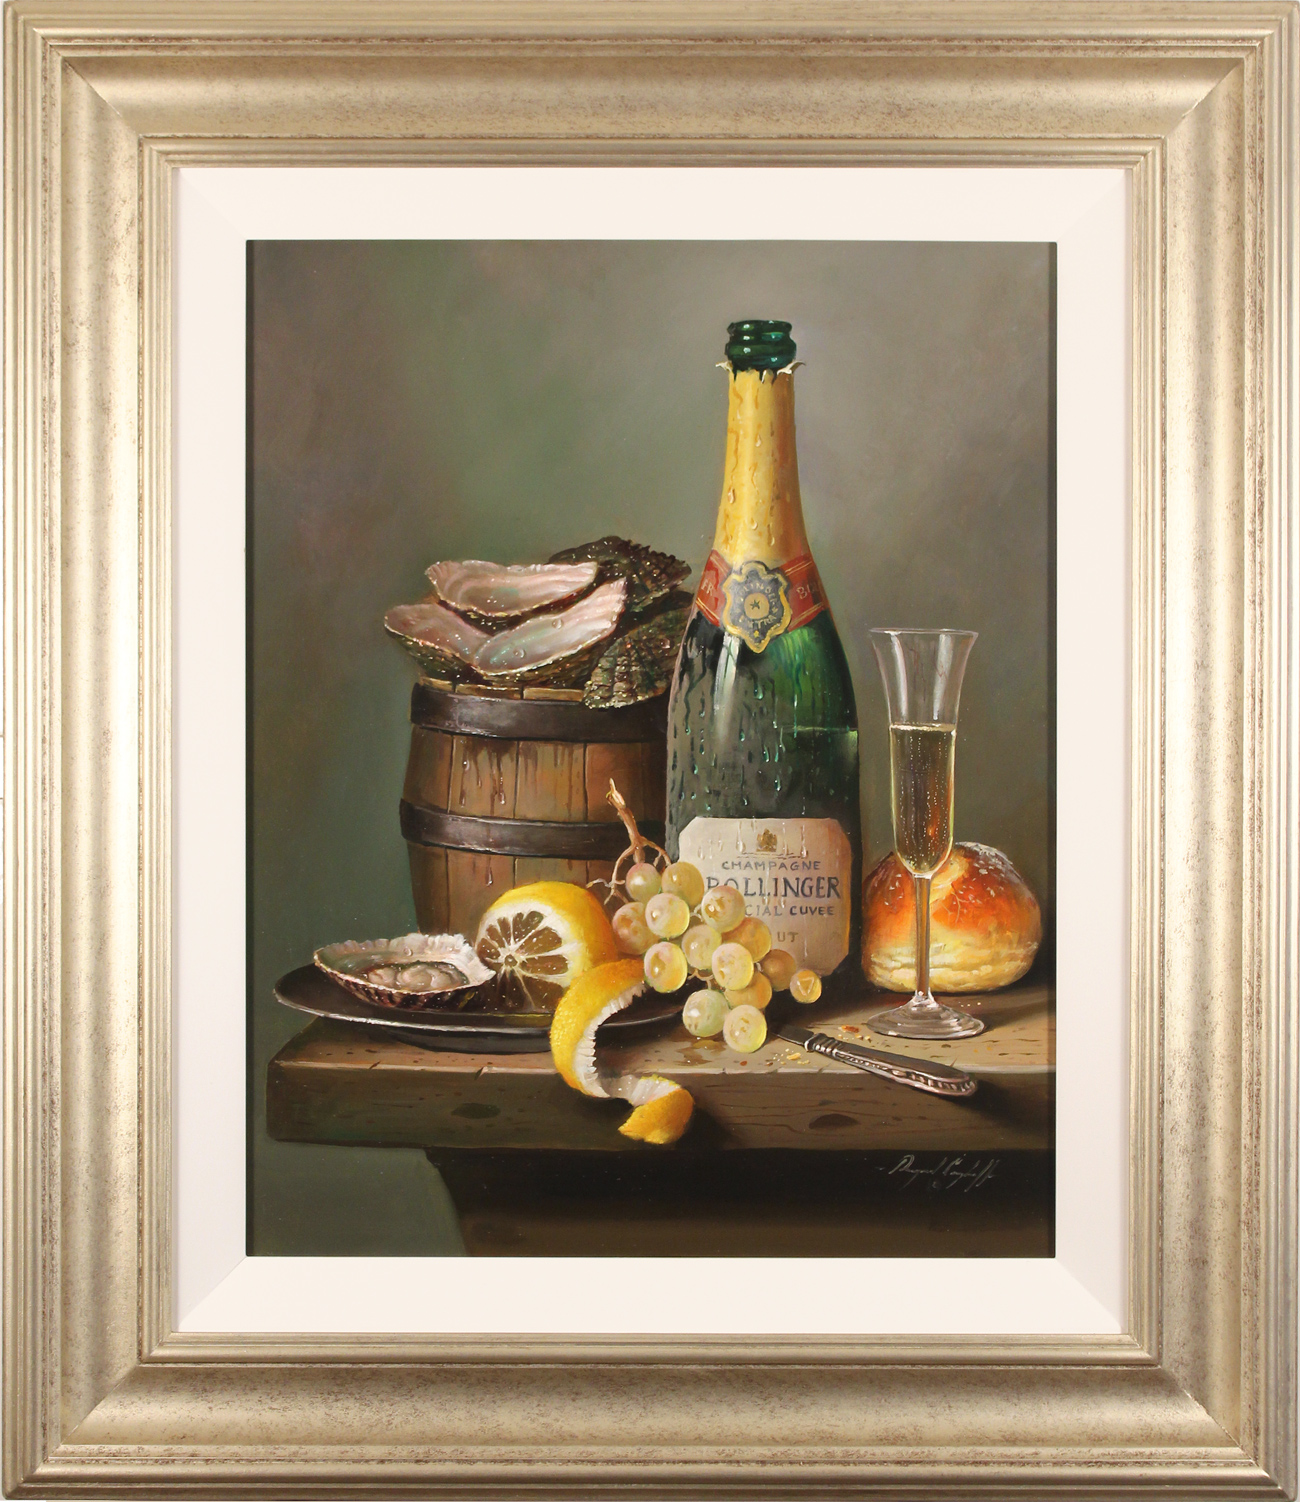 Raymond Campbell, Original oil painting on panel, Champagne Indulgence, click to enlarge